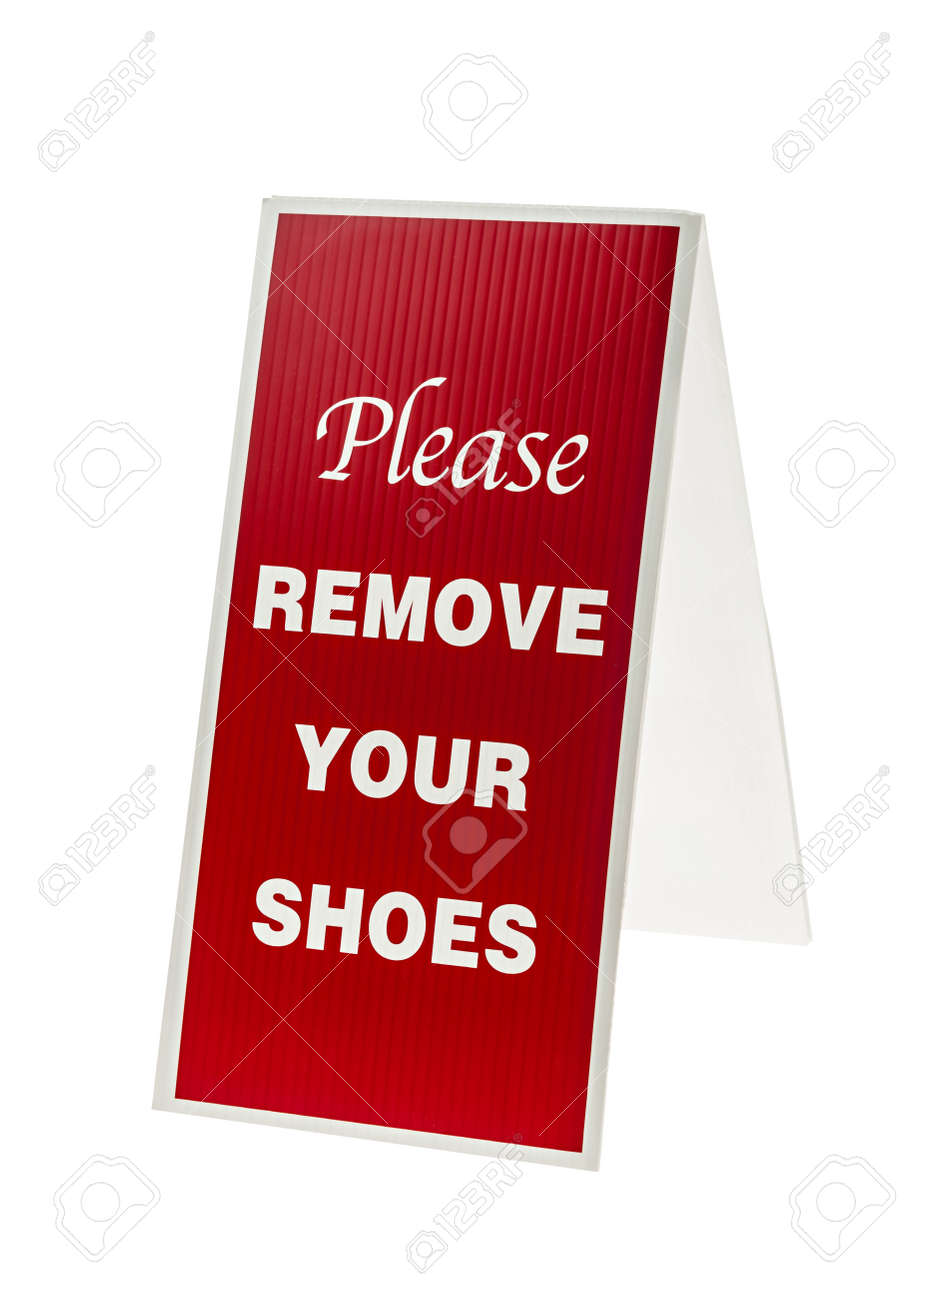 graphic relating to Please Remove Your Shoes Sign Printable Free called Crimson and white indicator claiming Make sure you Get rid of Your Sneakers isolated